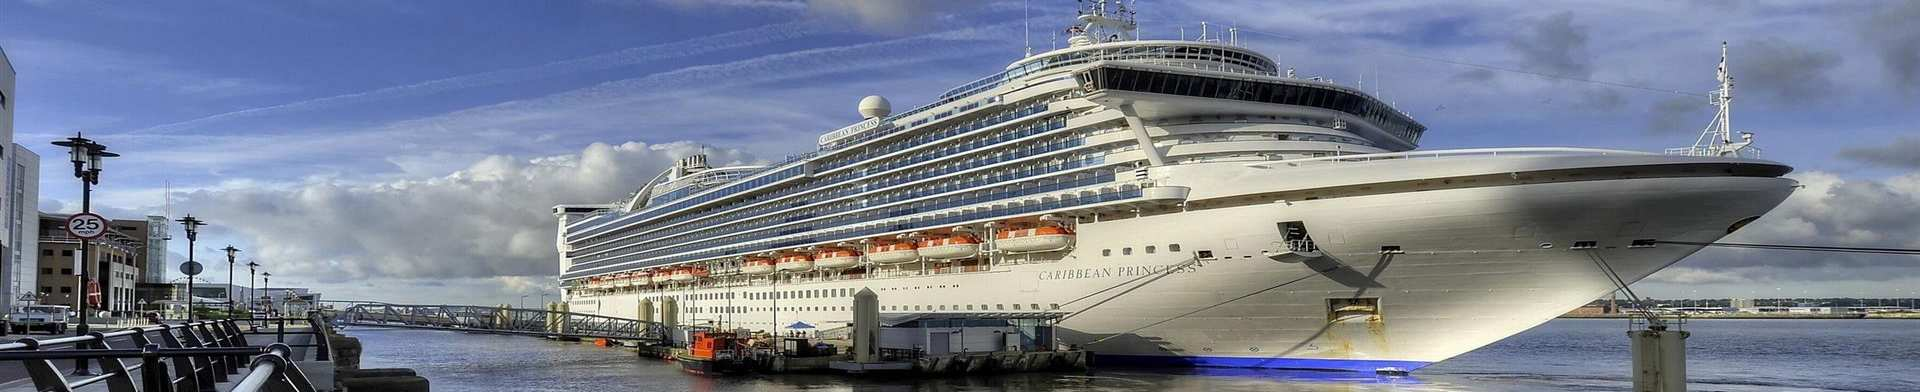 Compagnie Princess Cruises